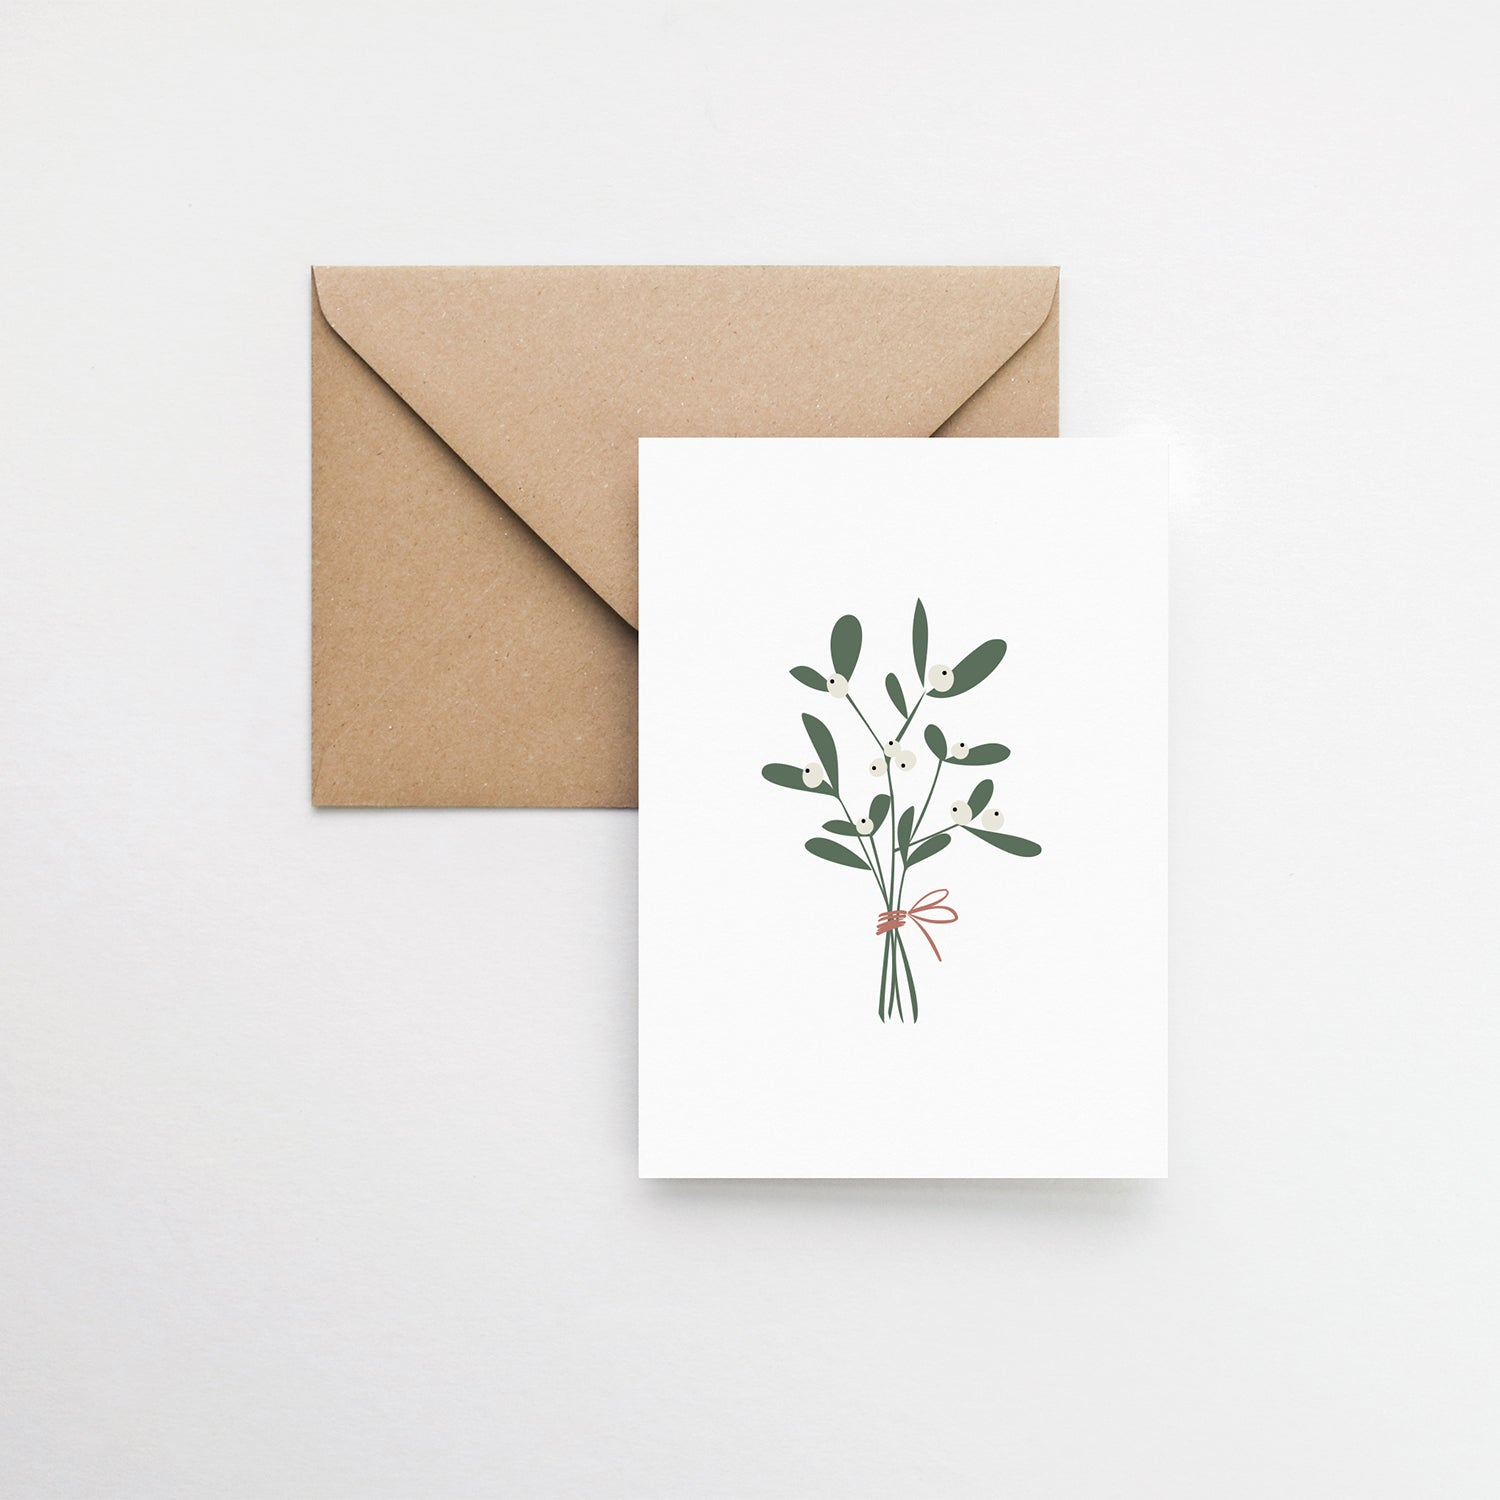 Mistletoe Christmas greeting card elemente design